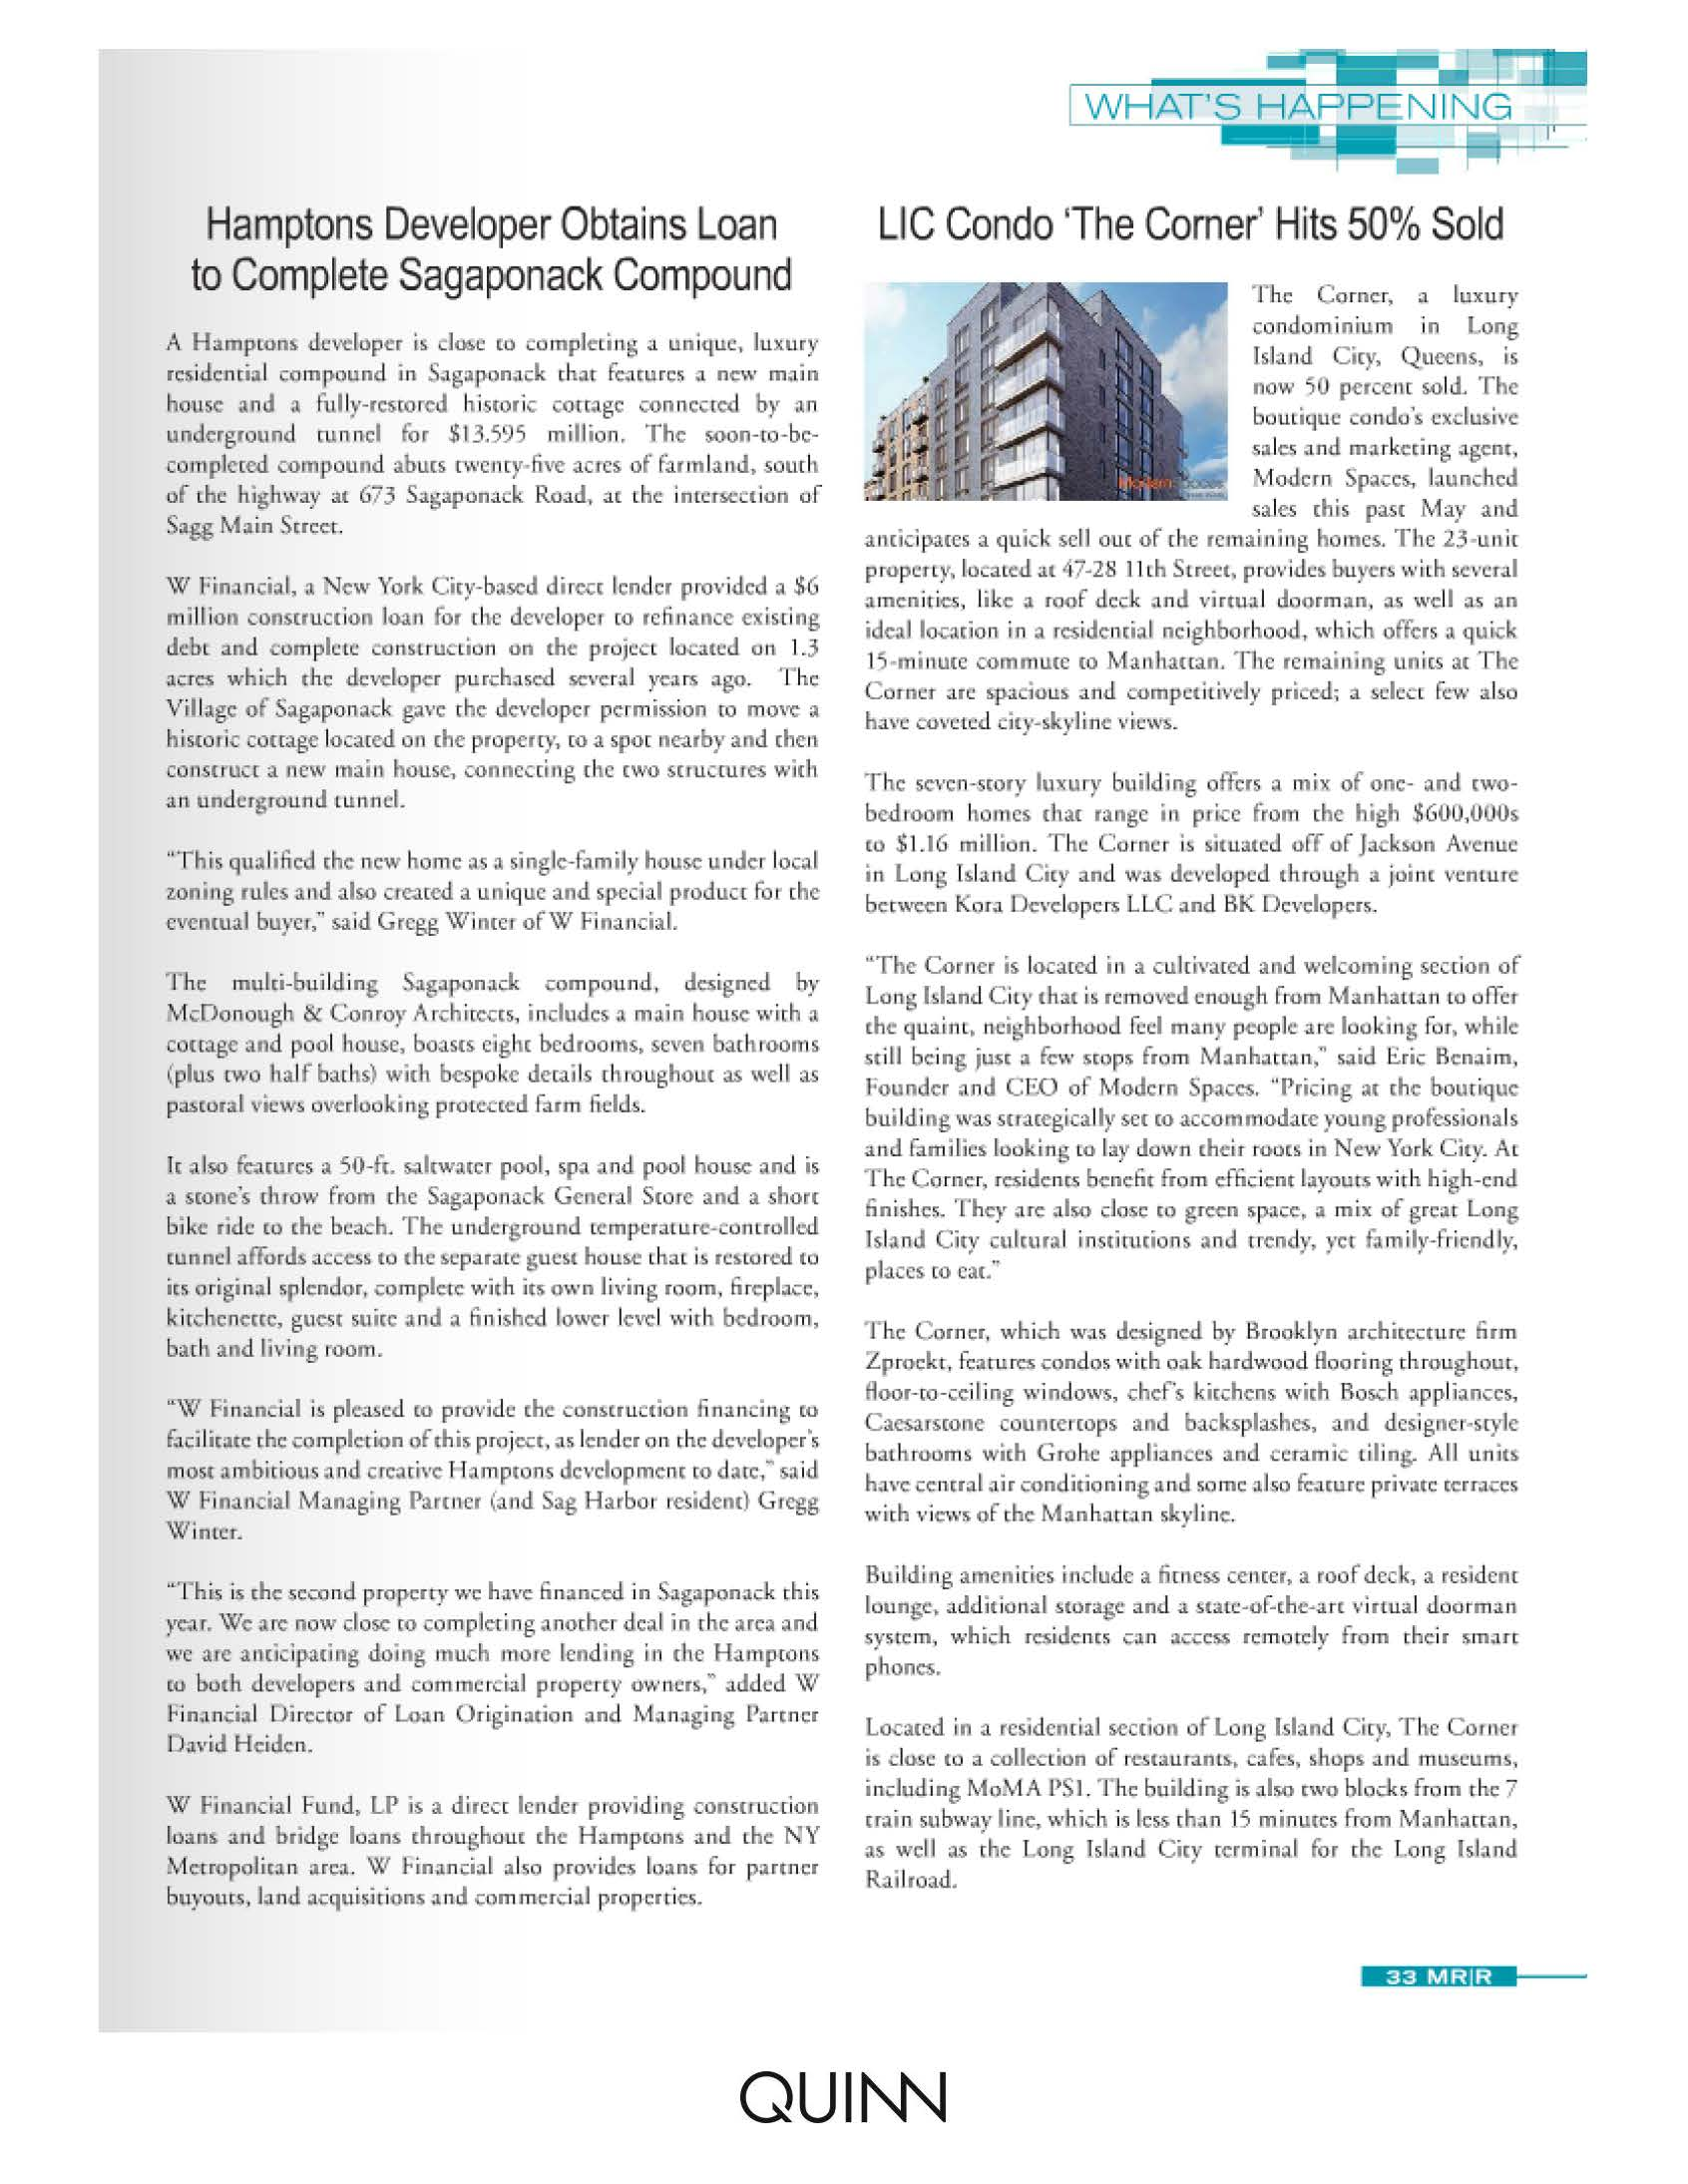 Mann Report - LIC Condo 'The Corner' Hits 50% Sold - 2.1.16_Page_2